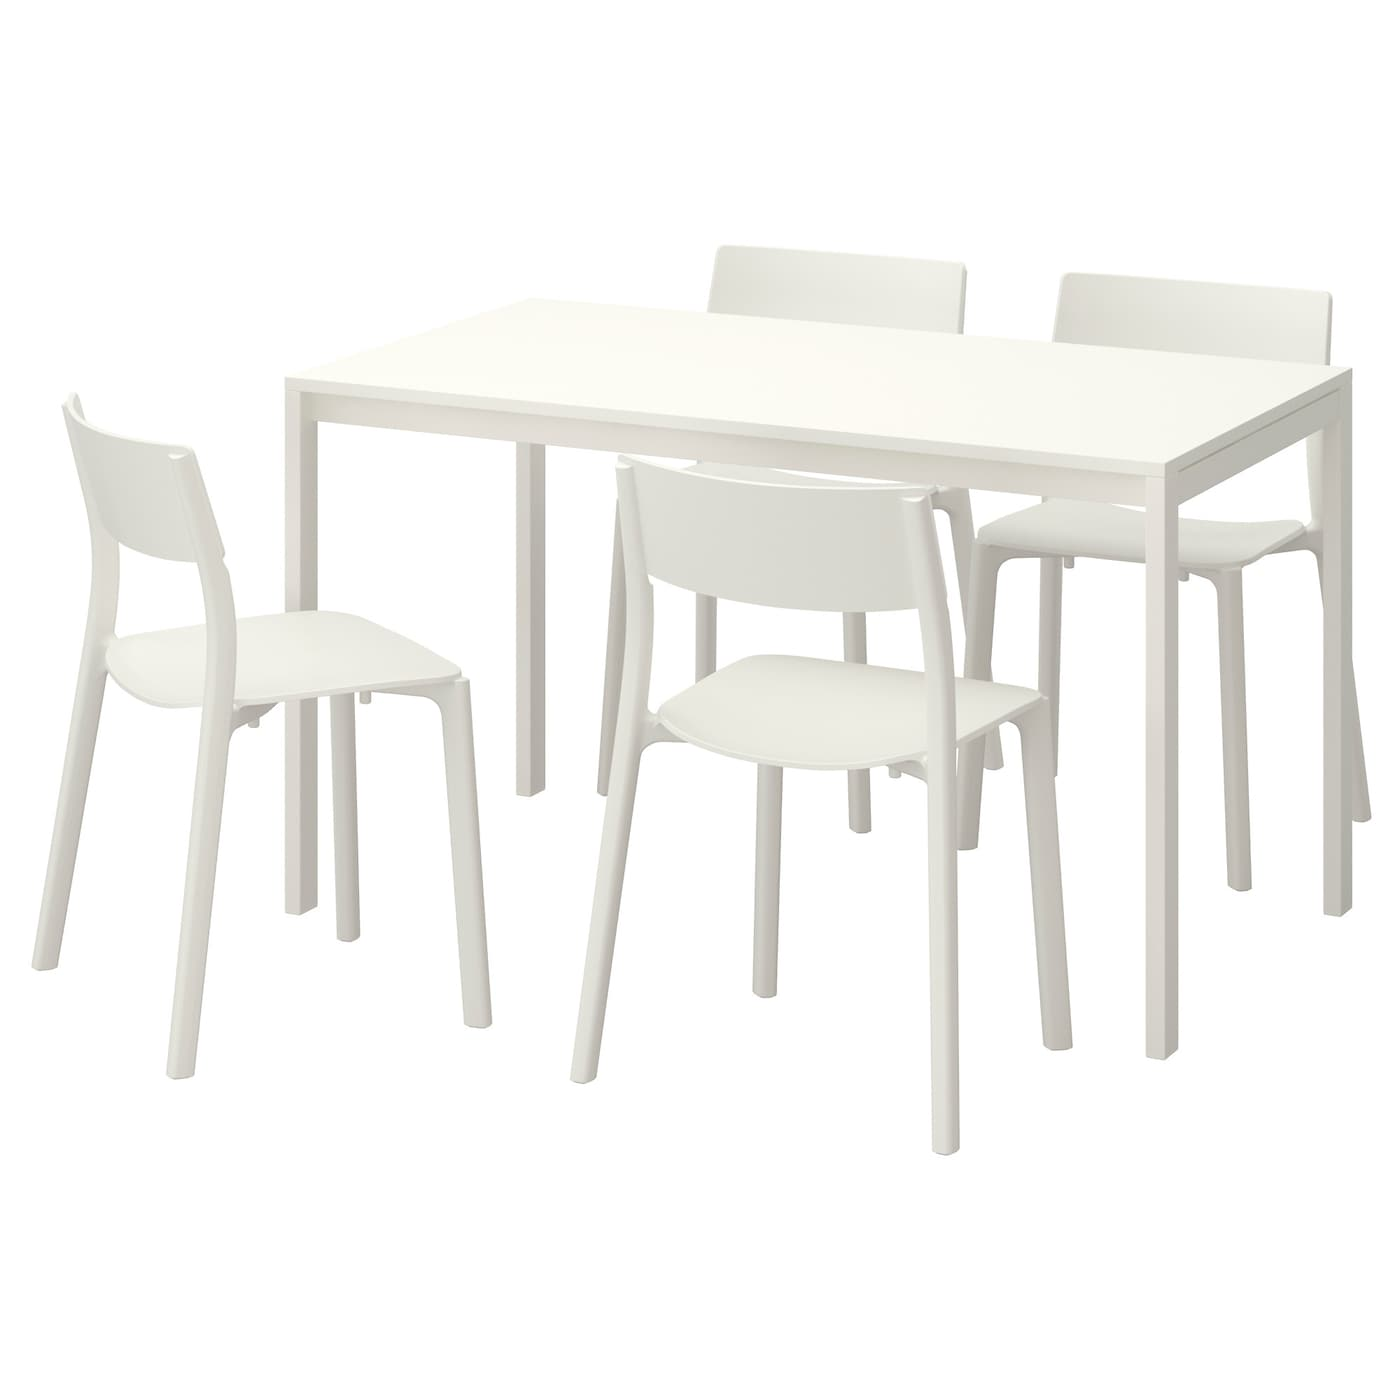 Melltorp janinge table and 4 chairs white white 125 cm ikea for White kitchen dining chairs